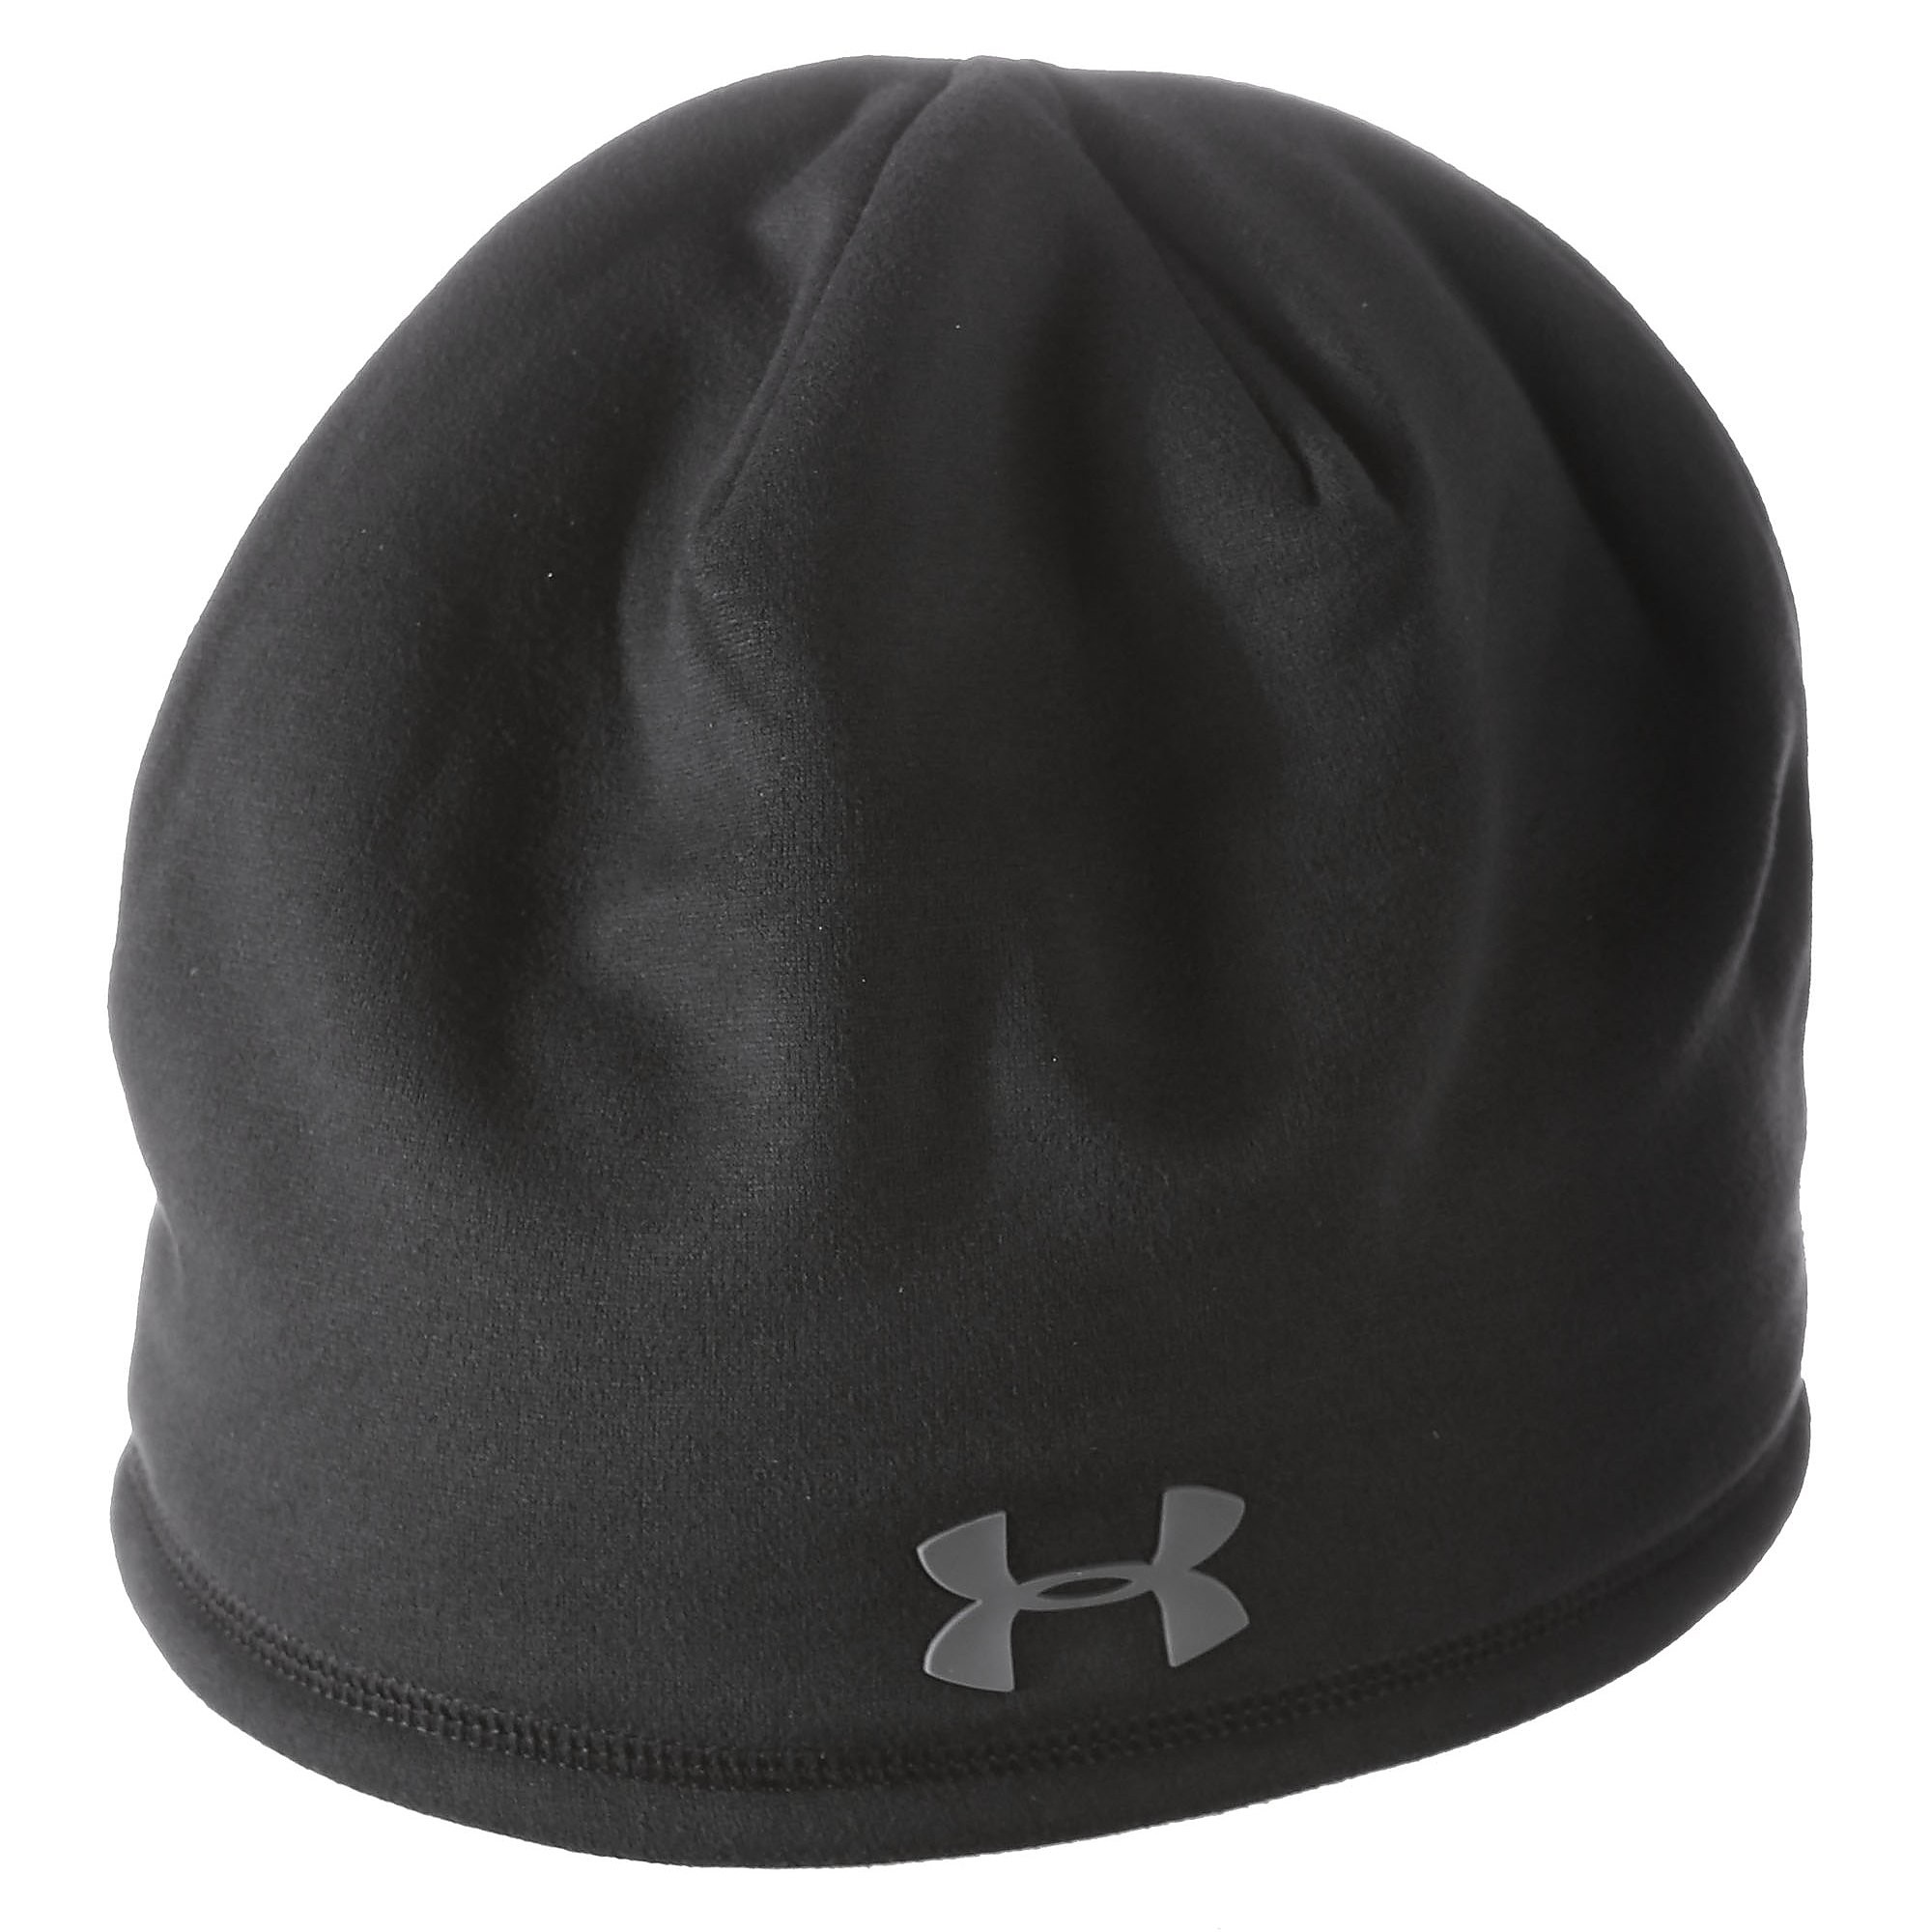 UNDER ARMOUR COLDGEAR INFRARED STORM 2.0 BEANIE